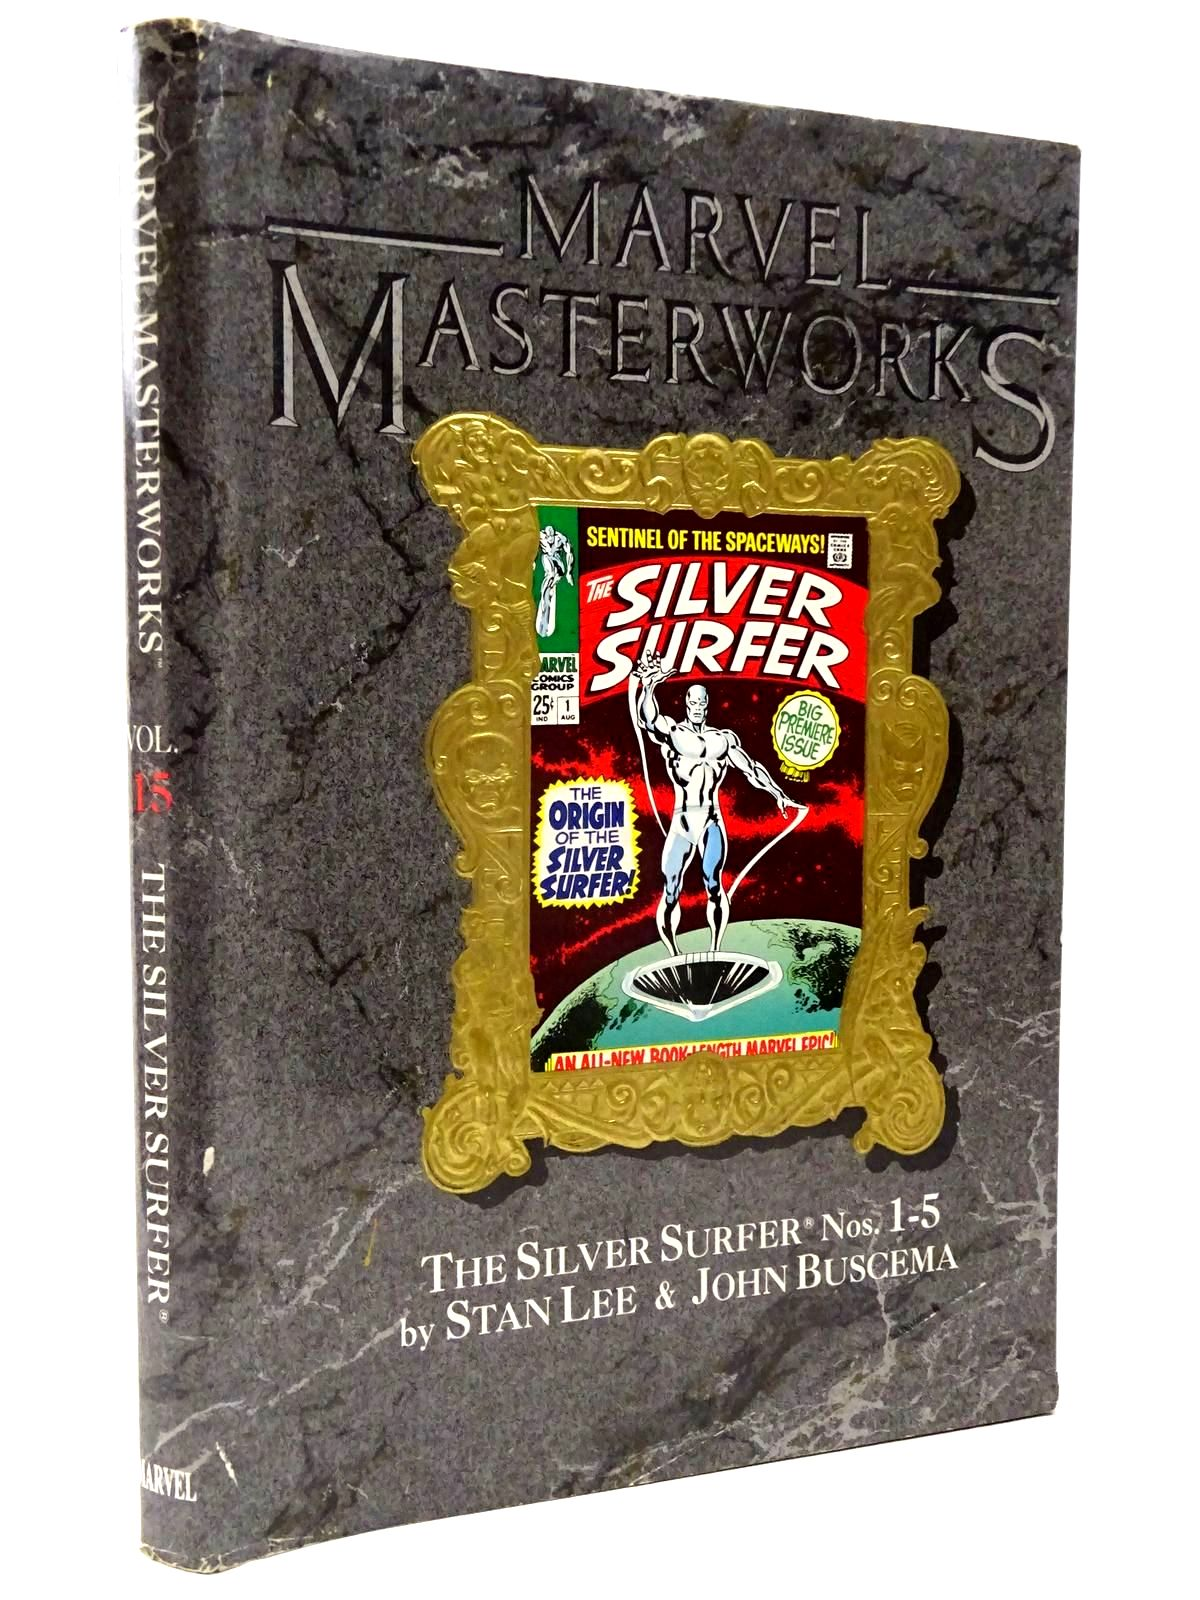 Photo of MARVEL MASTERWORKS VOLUME 15 - THE SILVER SURFER written by Lee, Stan Buscema, John published by Marvel Comics Limited (STOCK CODE: 2130316)  for sale by Stella & Rose's Books